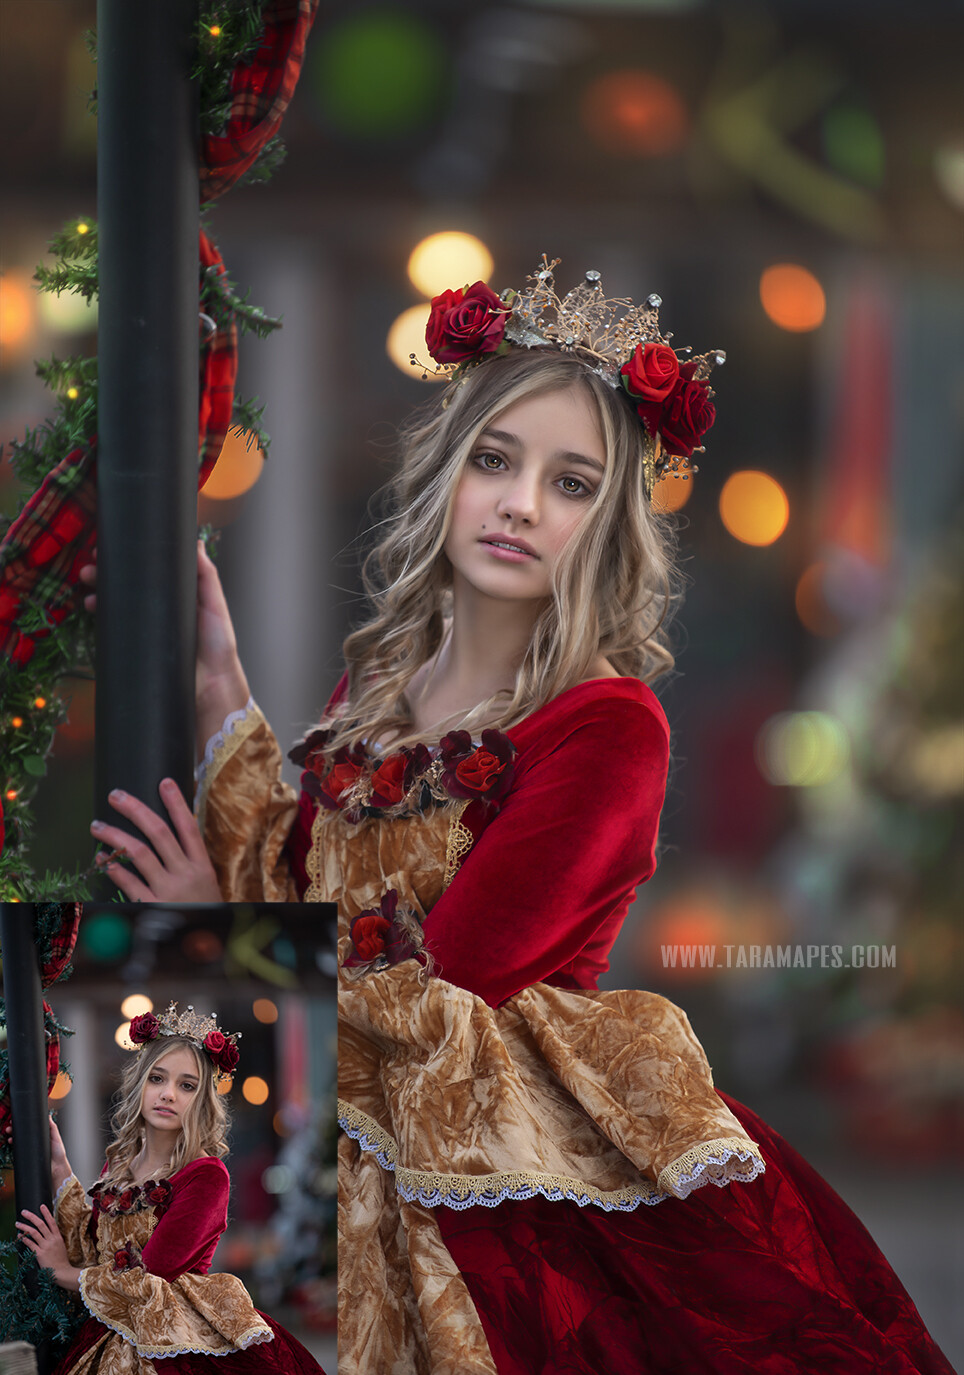 Christmas Belle- Fine Art Painterly Photoshop Tutorial - PAINTED SKIN ACTION SET INCLUDED- Fine Art Tutorial by Tara Mapes